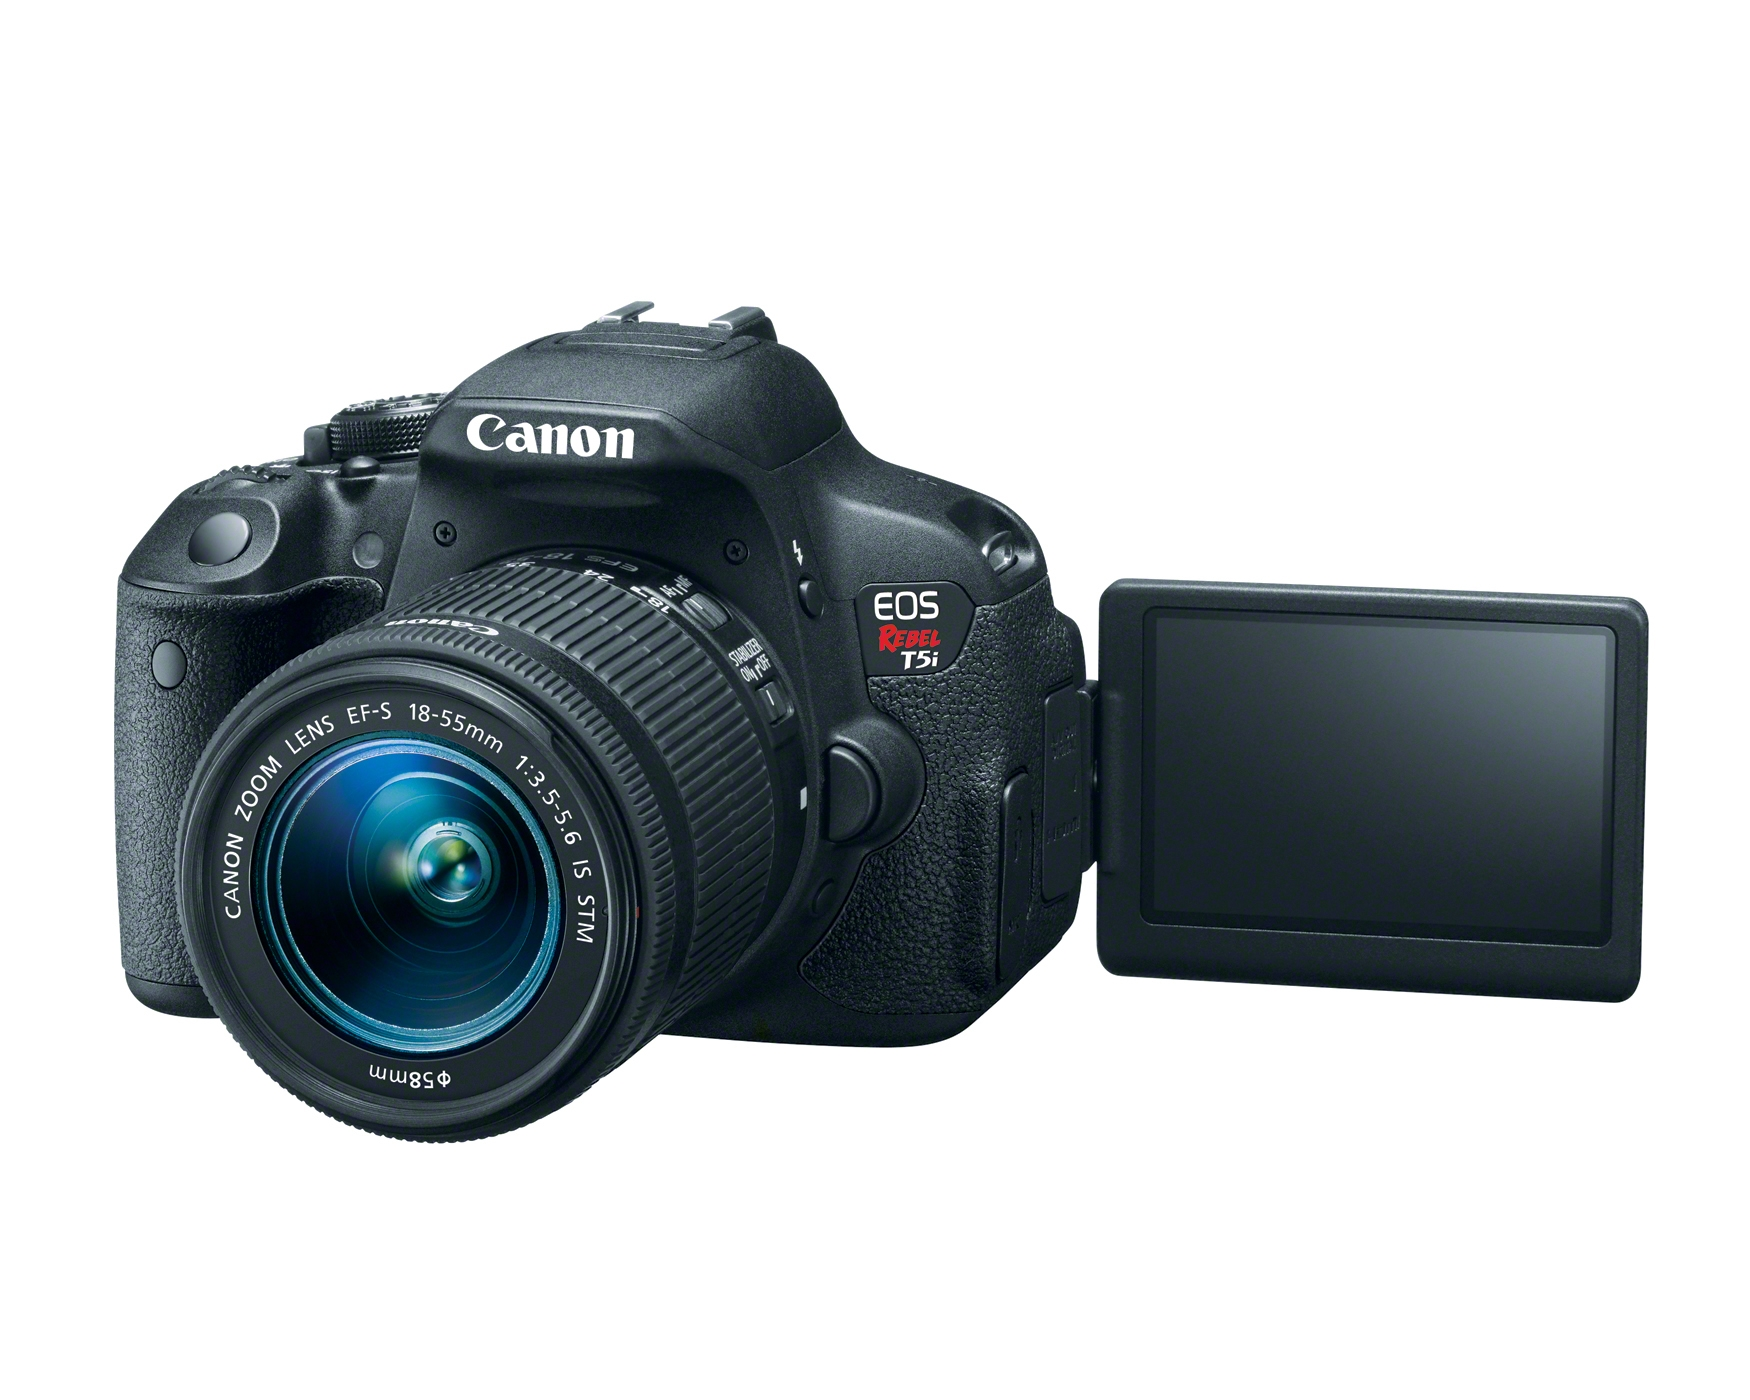 Photo of Canon Rebel EOS T5i camera that is available for checkout. Information about equipment follows the image.